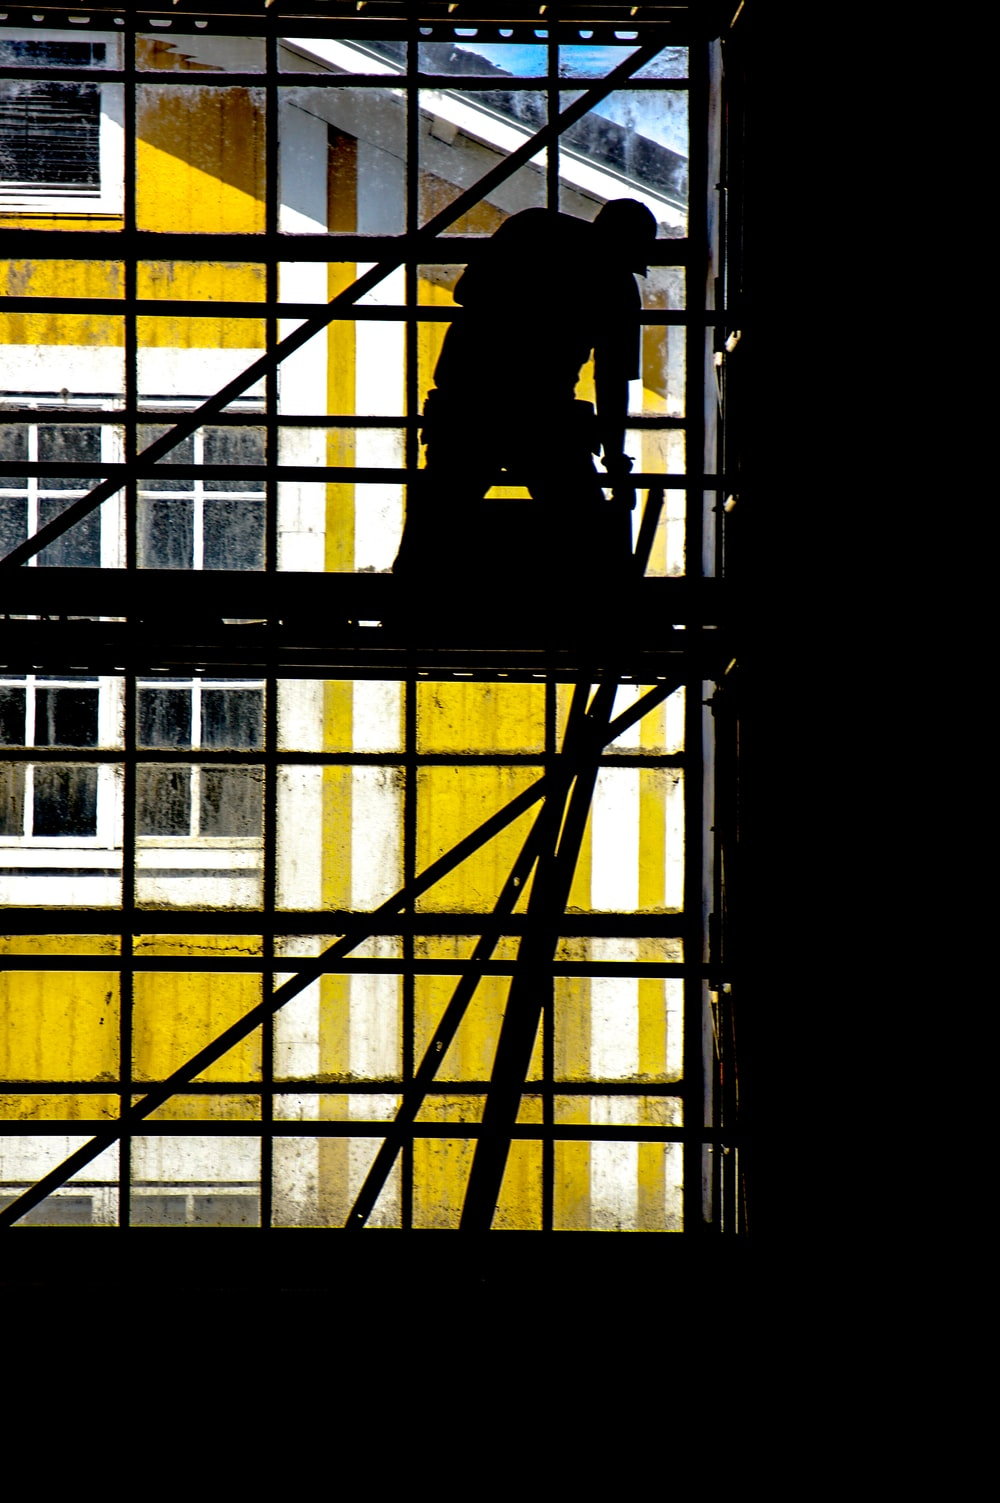 silhouette of man standing on the scaffolding